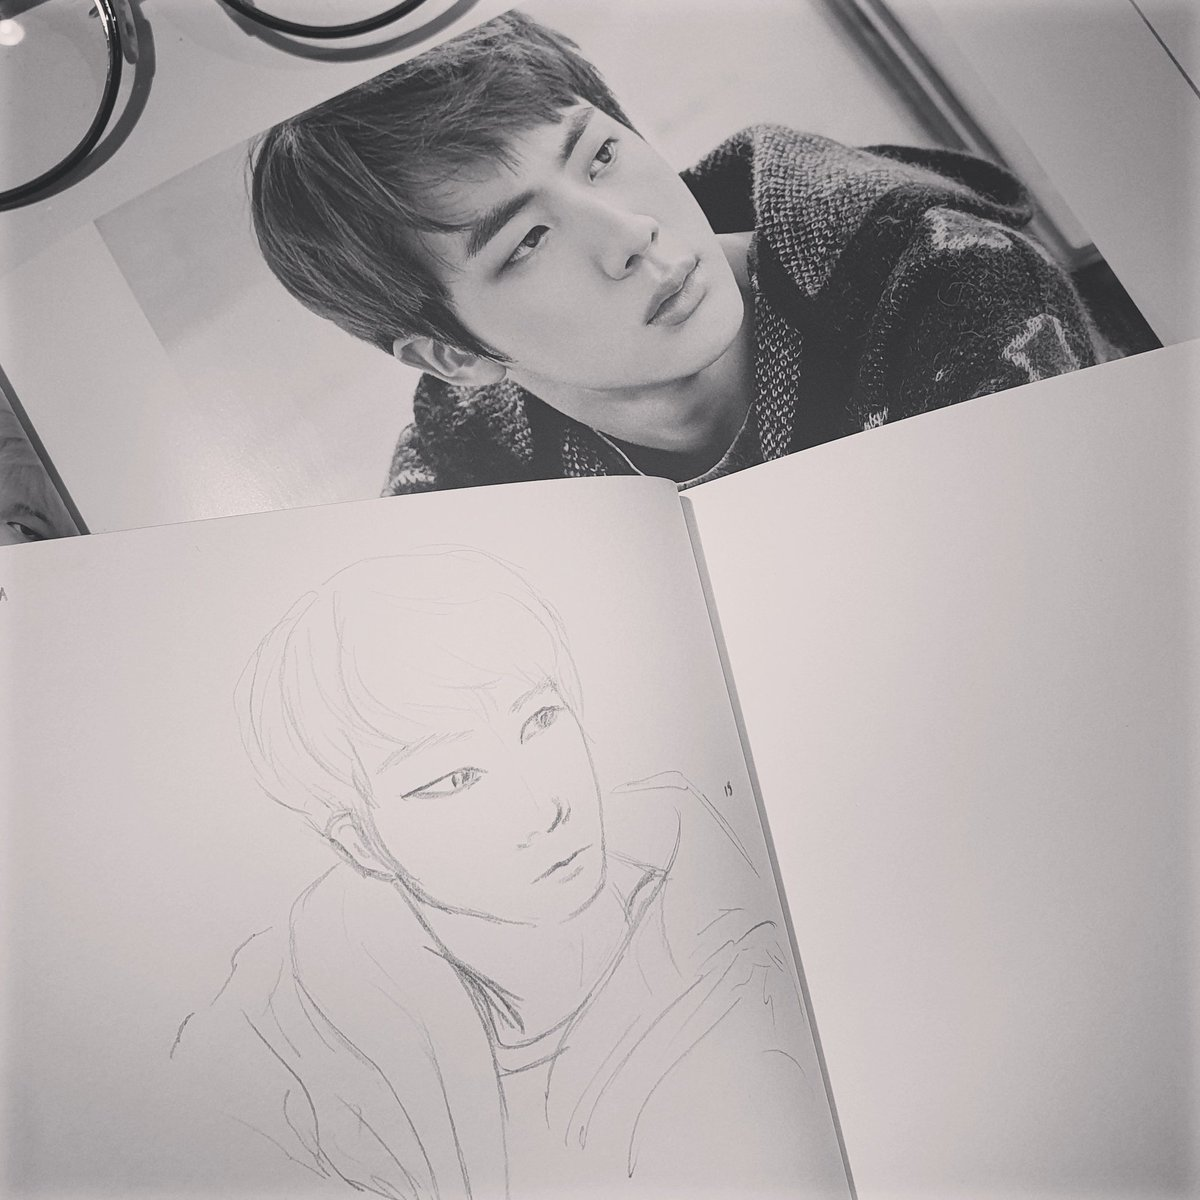 """Moving onto """"You Never Walk Alone"""" Era! It's in those times I really would have loved to be able to move his right eye T^T #kimseokjin #seokjin #jin #btsjin #bts #bangtansonyeondan #btsfanart #sketch #sketchbook #drawing #art #bangtan #onebangtanaday #youneverwalkalone #ynwa"""